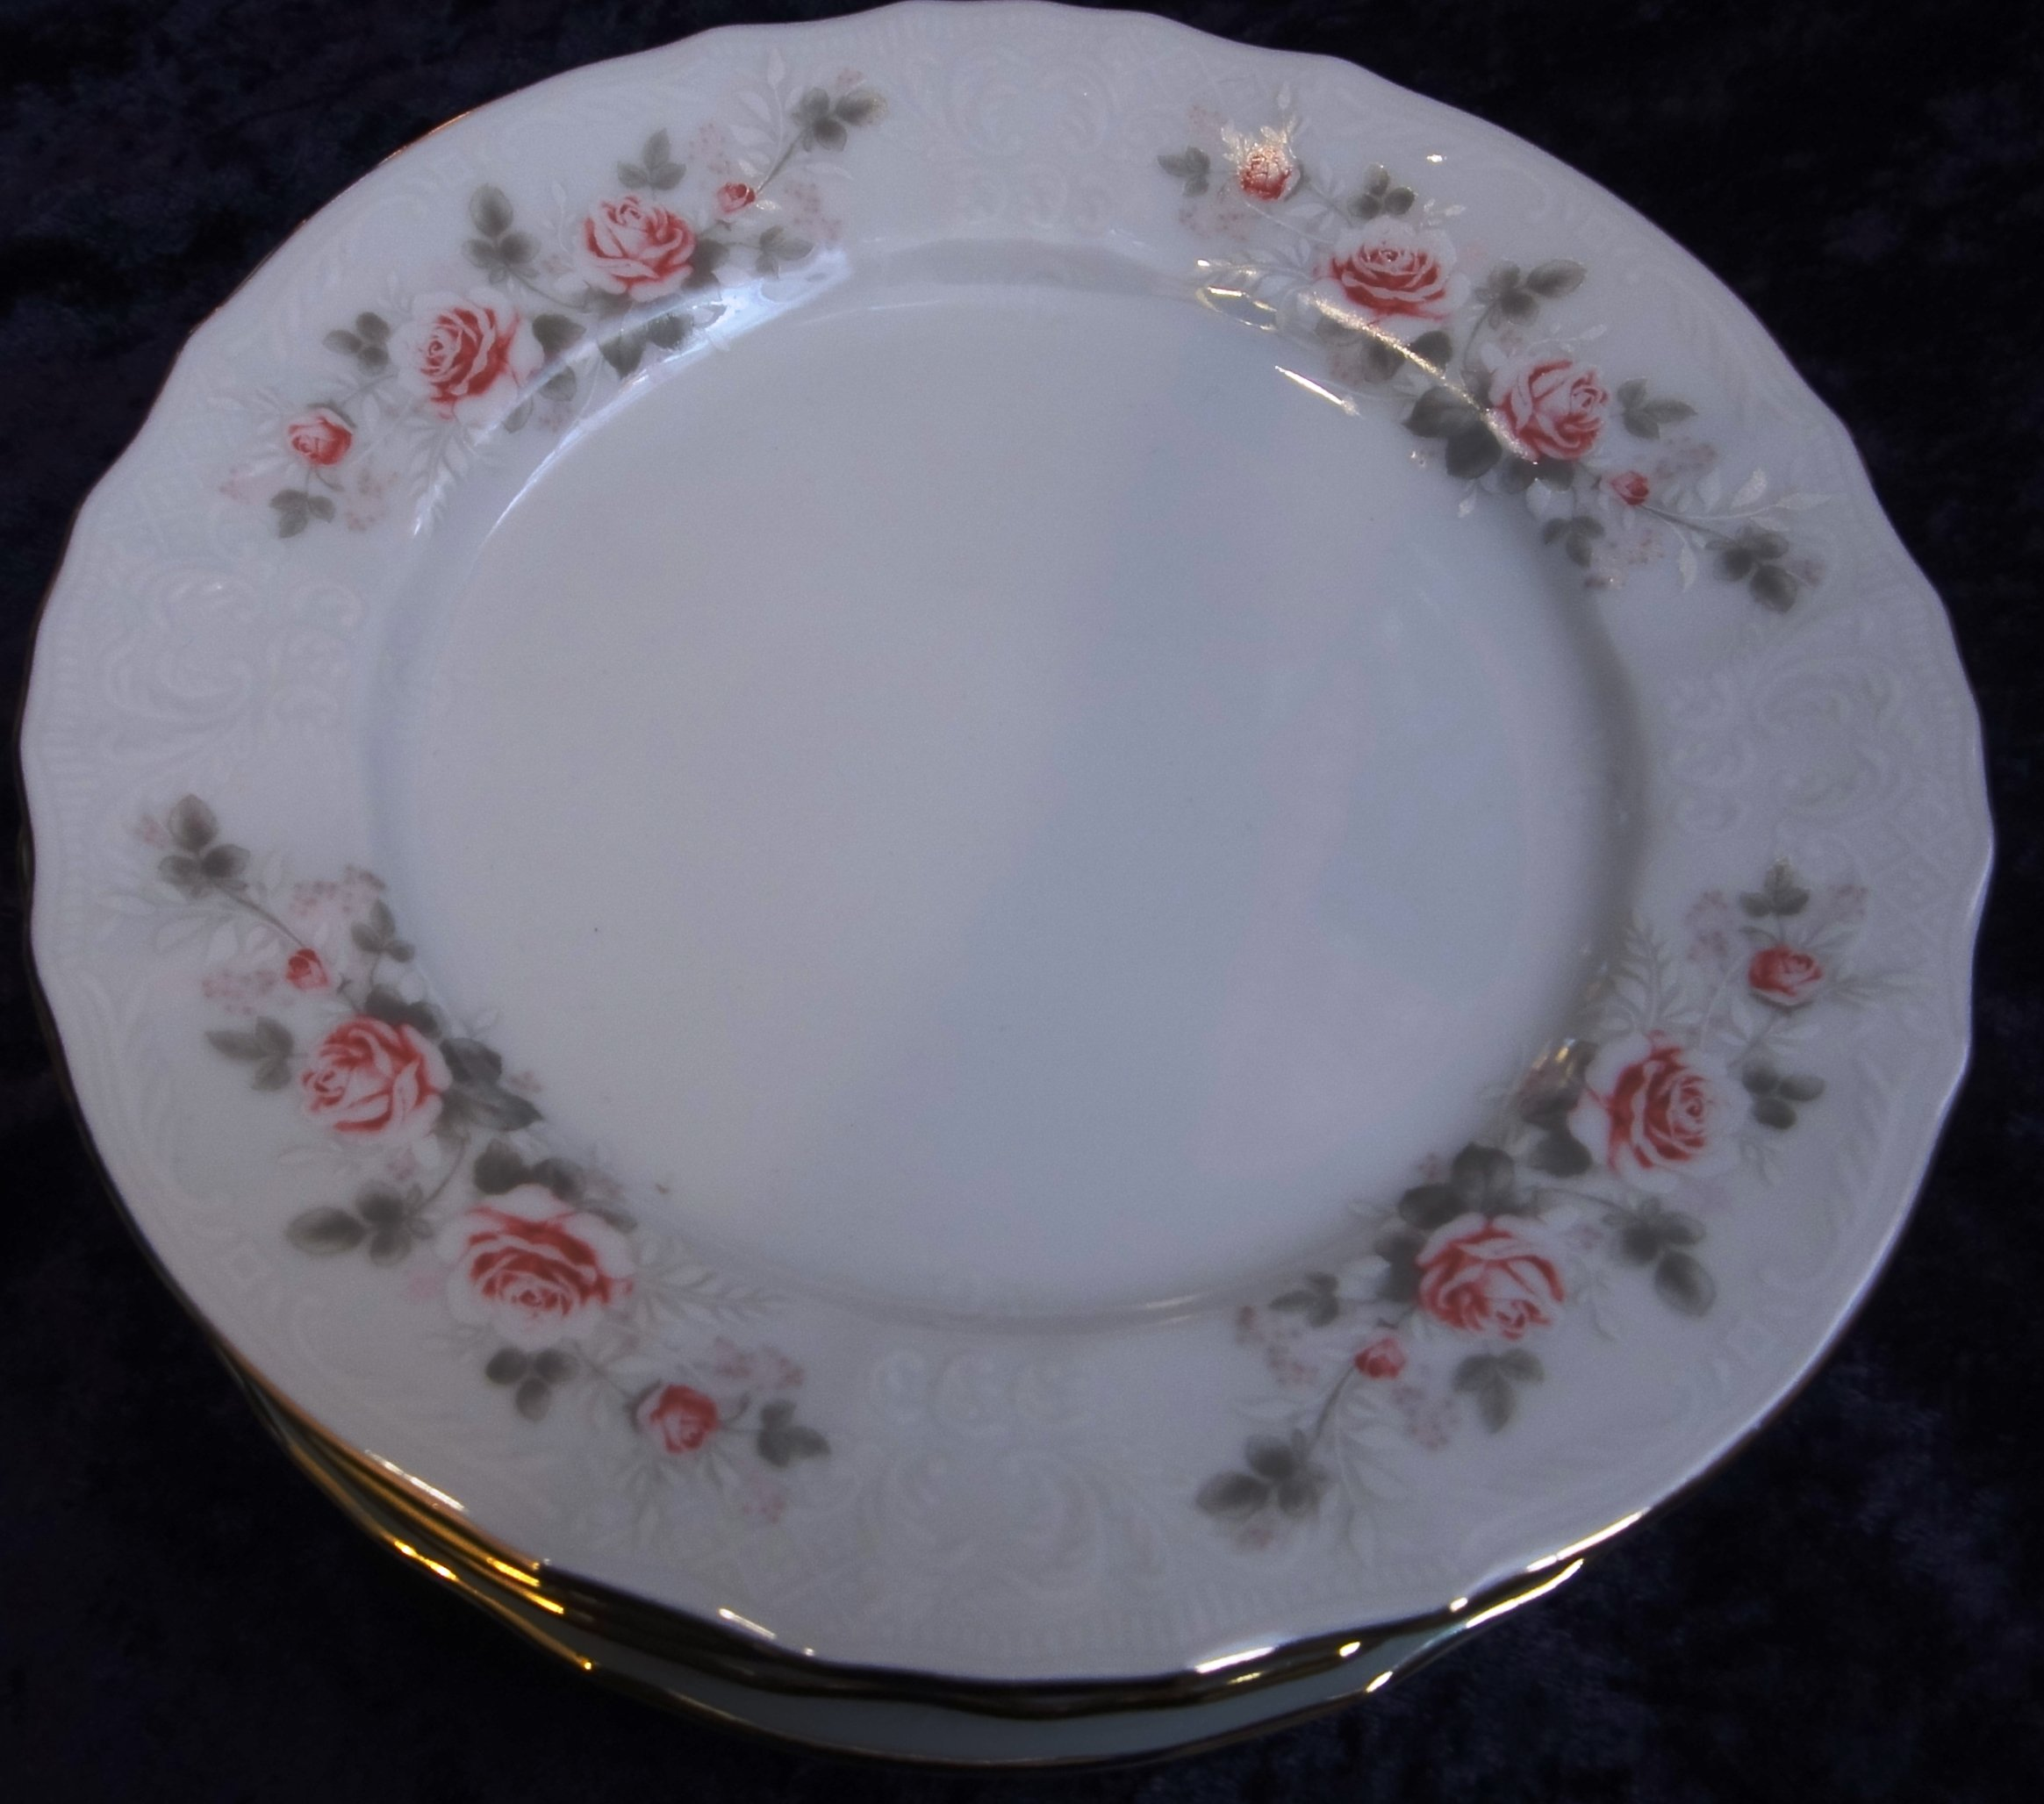 Plate set for 6 persons, Grey Roses, Carlsbad porcelain